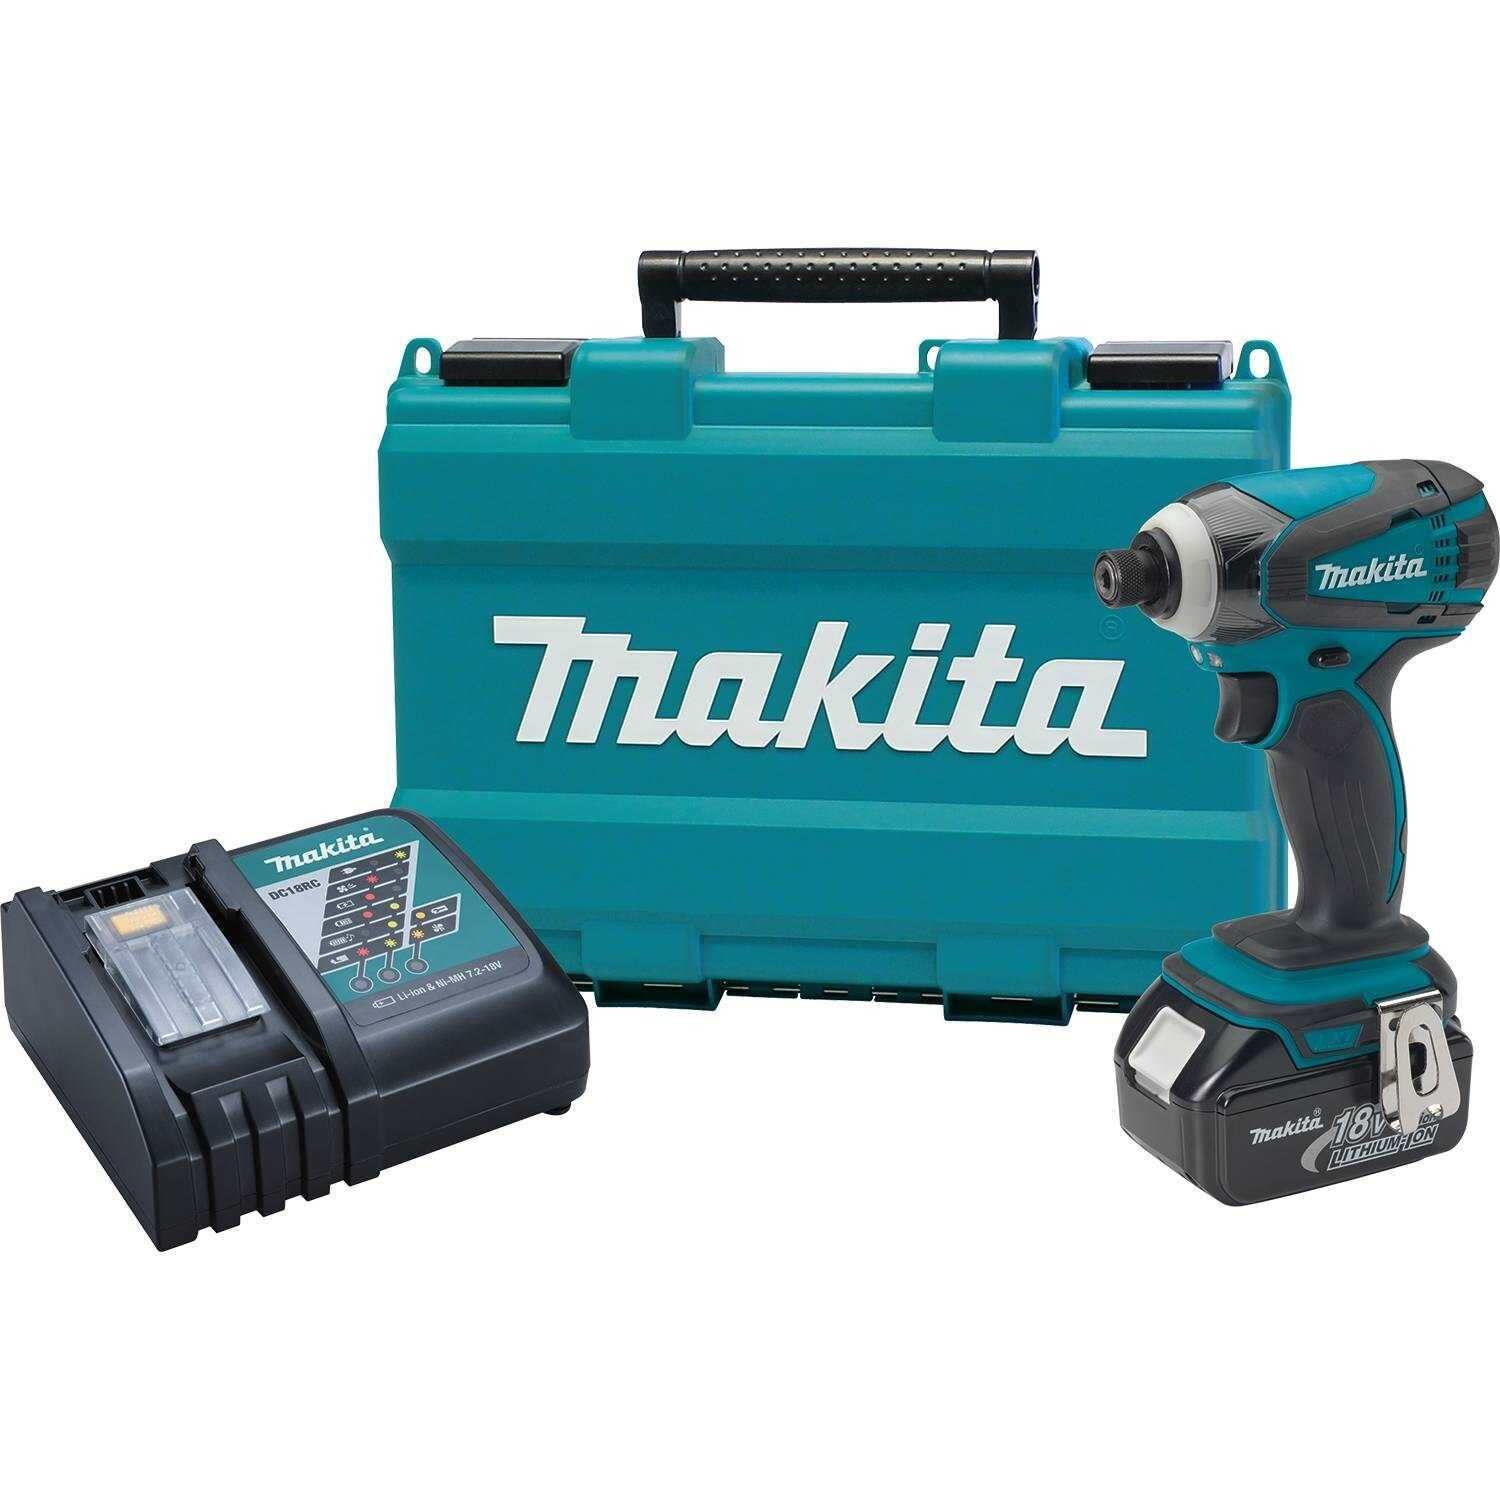 Makita  LXT  18 volts 1/4 in. Hex  1/4 in. Impact Driver  2300 rpm 1420 in-lb 1  3200 ipm Cordless